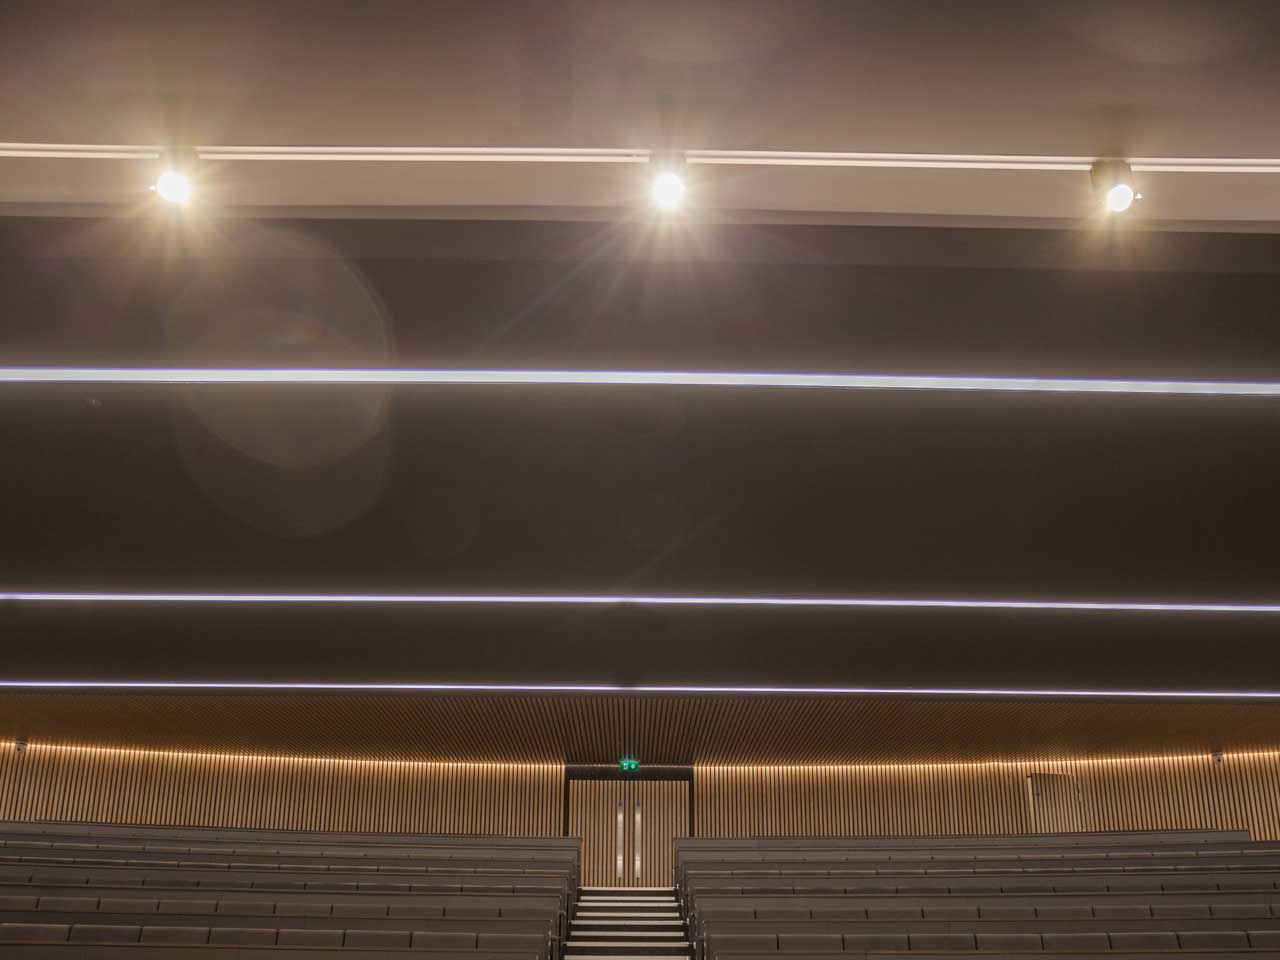 Track spotlights provide addtional focus on the lectern area at the front of the auditorium